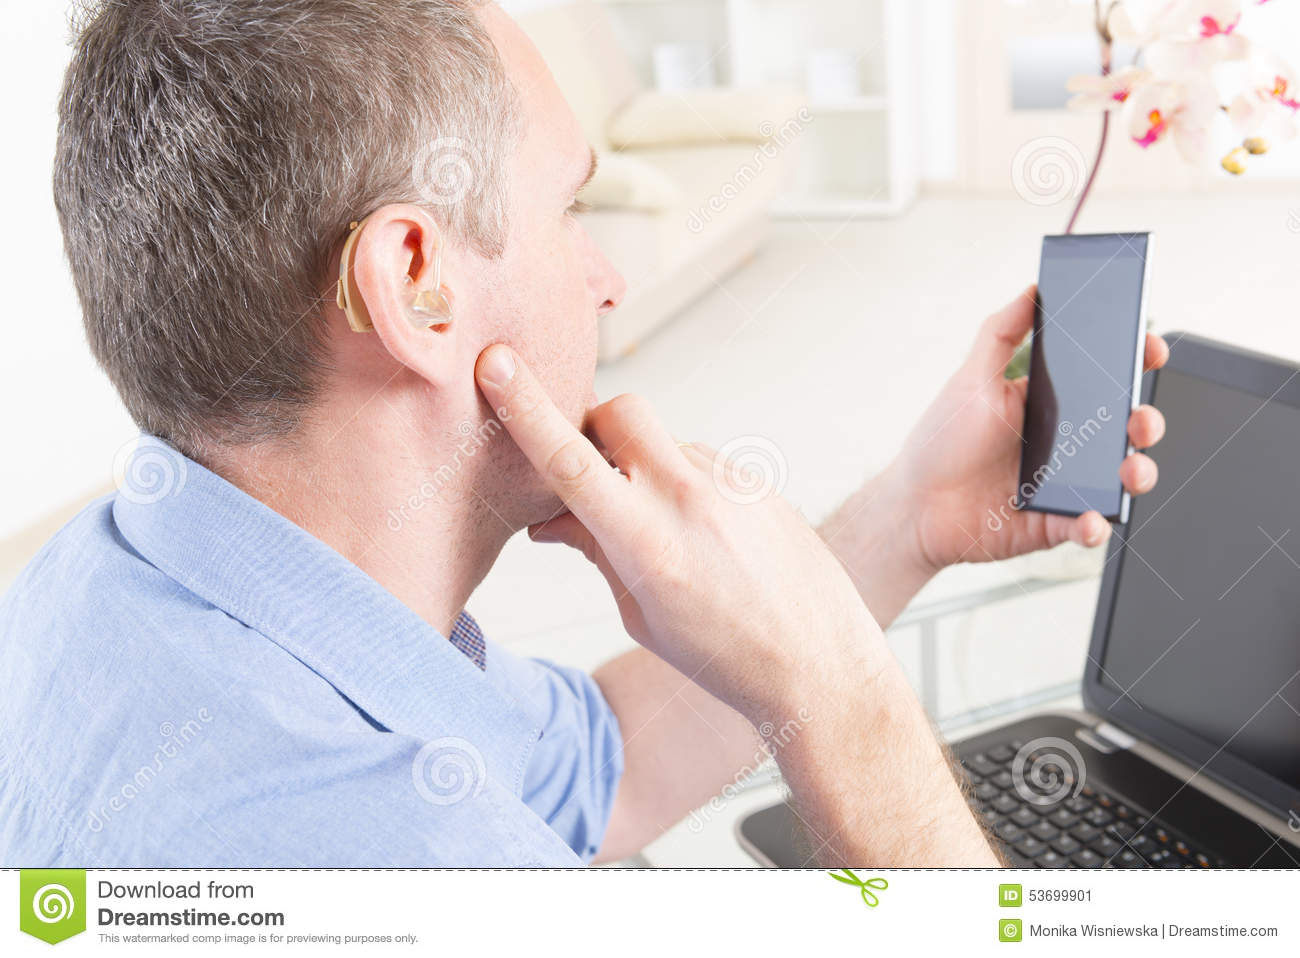 hearing impaired man working with laptop and mobile phone